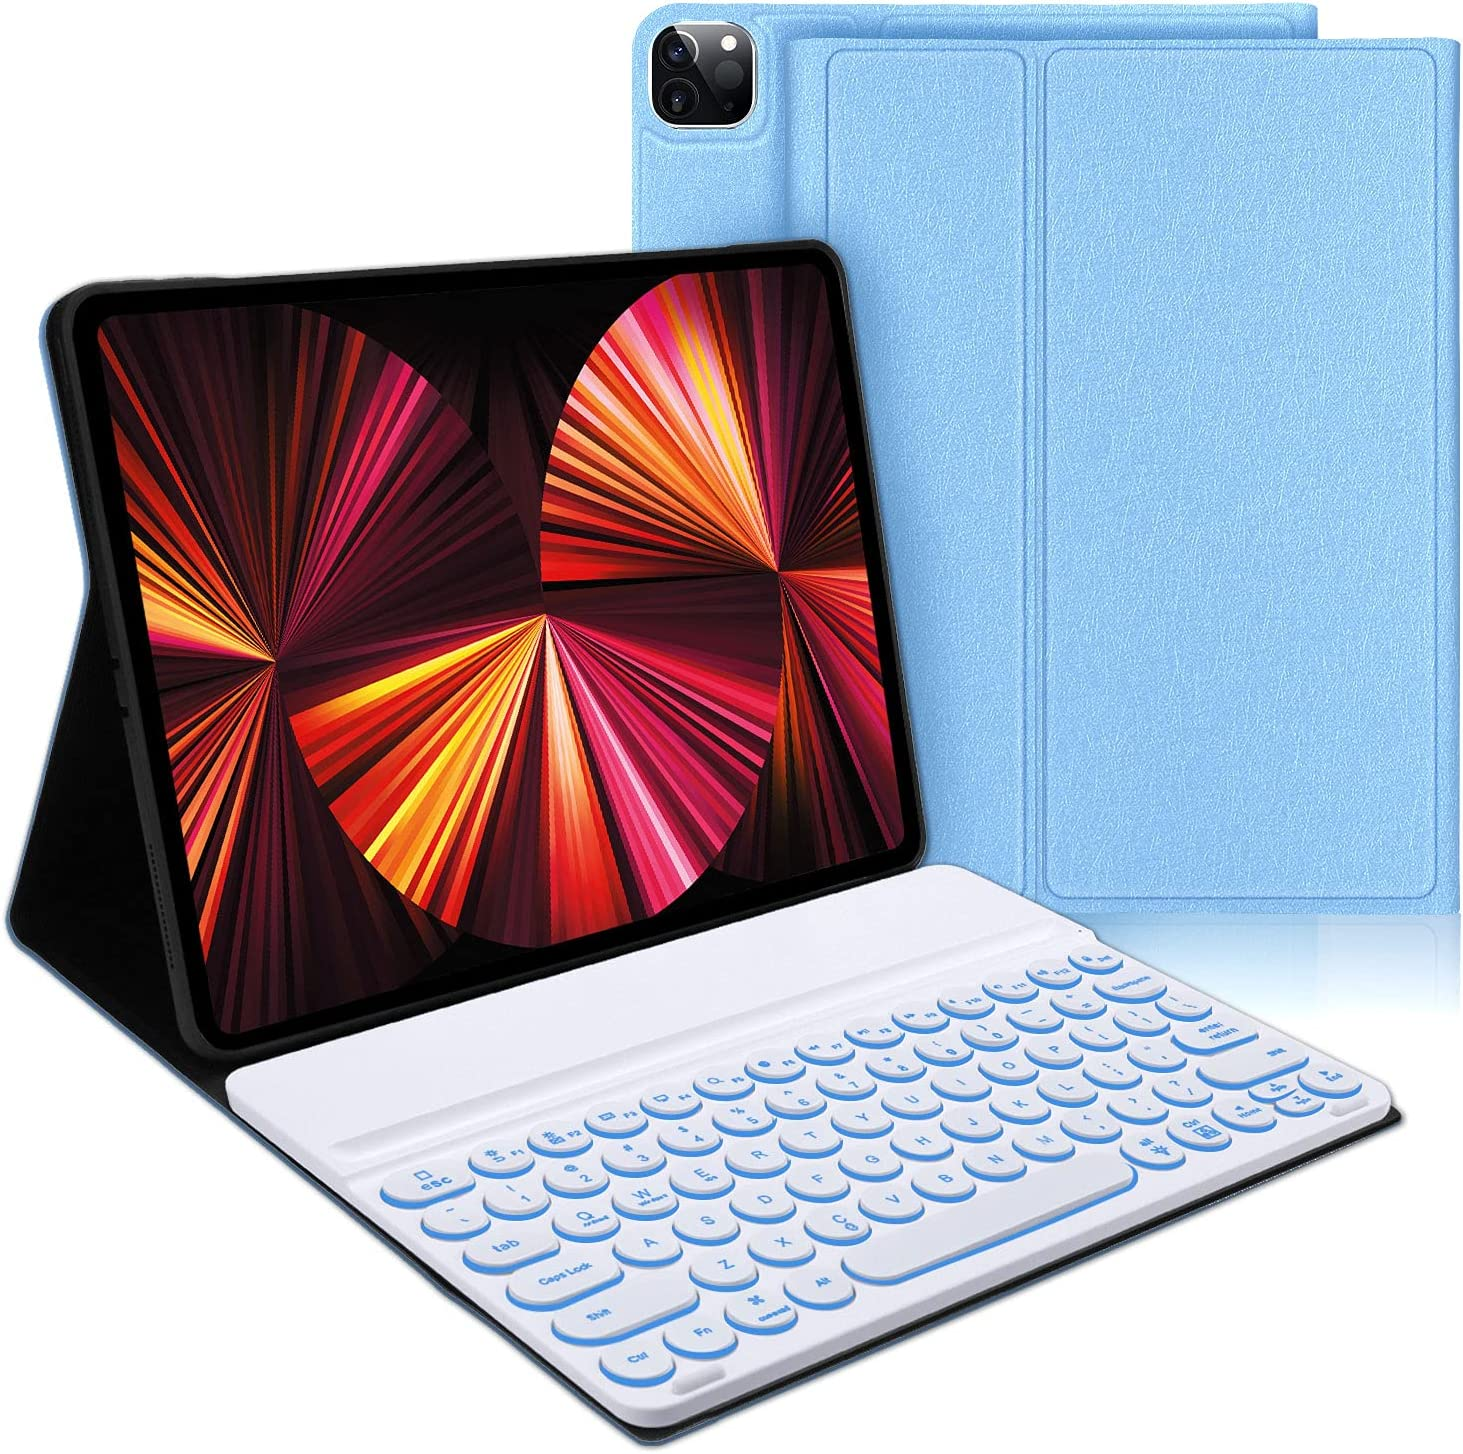 iPad Pro 2021 12.9 Case with Keyboard, Compatible with iPad Pro 12.9 inch 5th / 4th / 3rd Generation - 7 Color Backlit, Wireless Detachable Keyboard - Smart Folio Case for iPad Pro 12.9, Blue